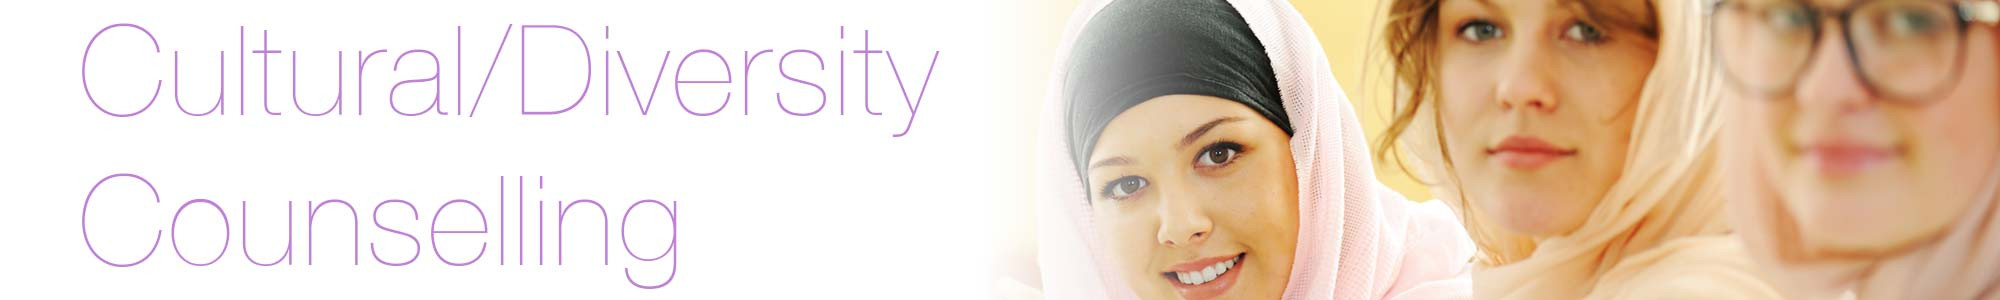 Medway Counselling Cultural and Diversity Counselling